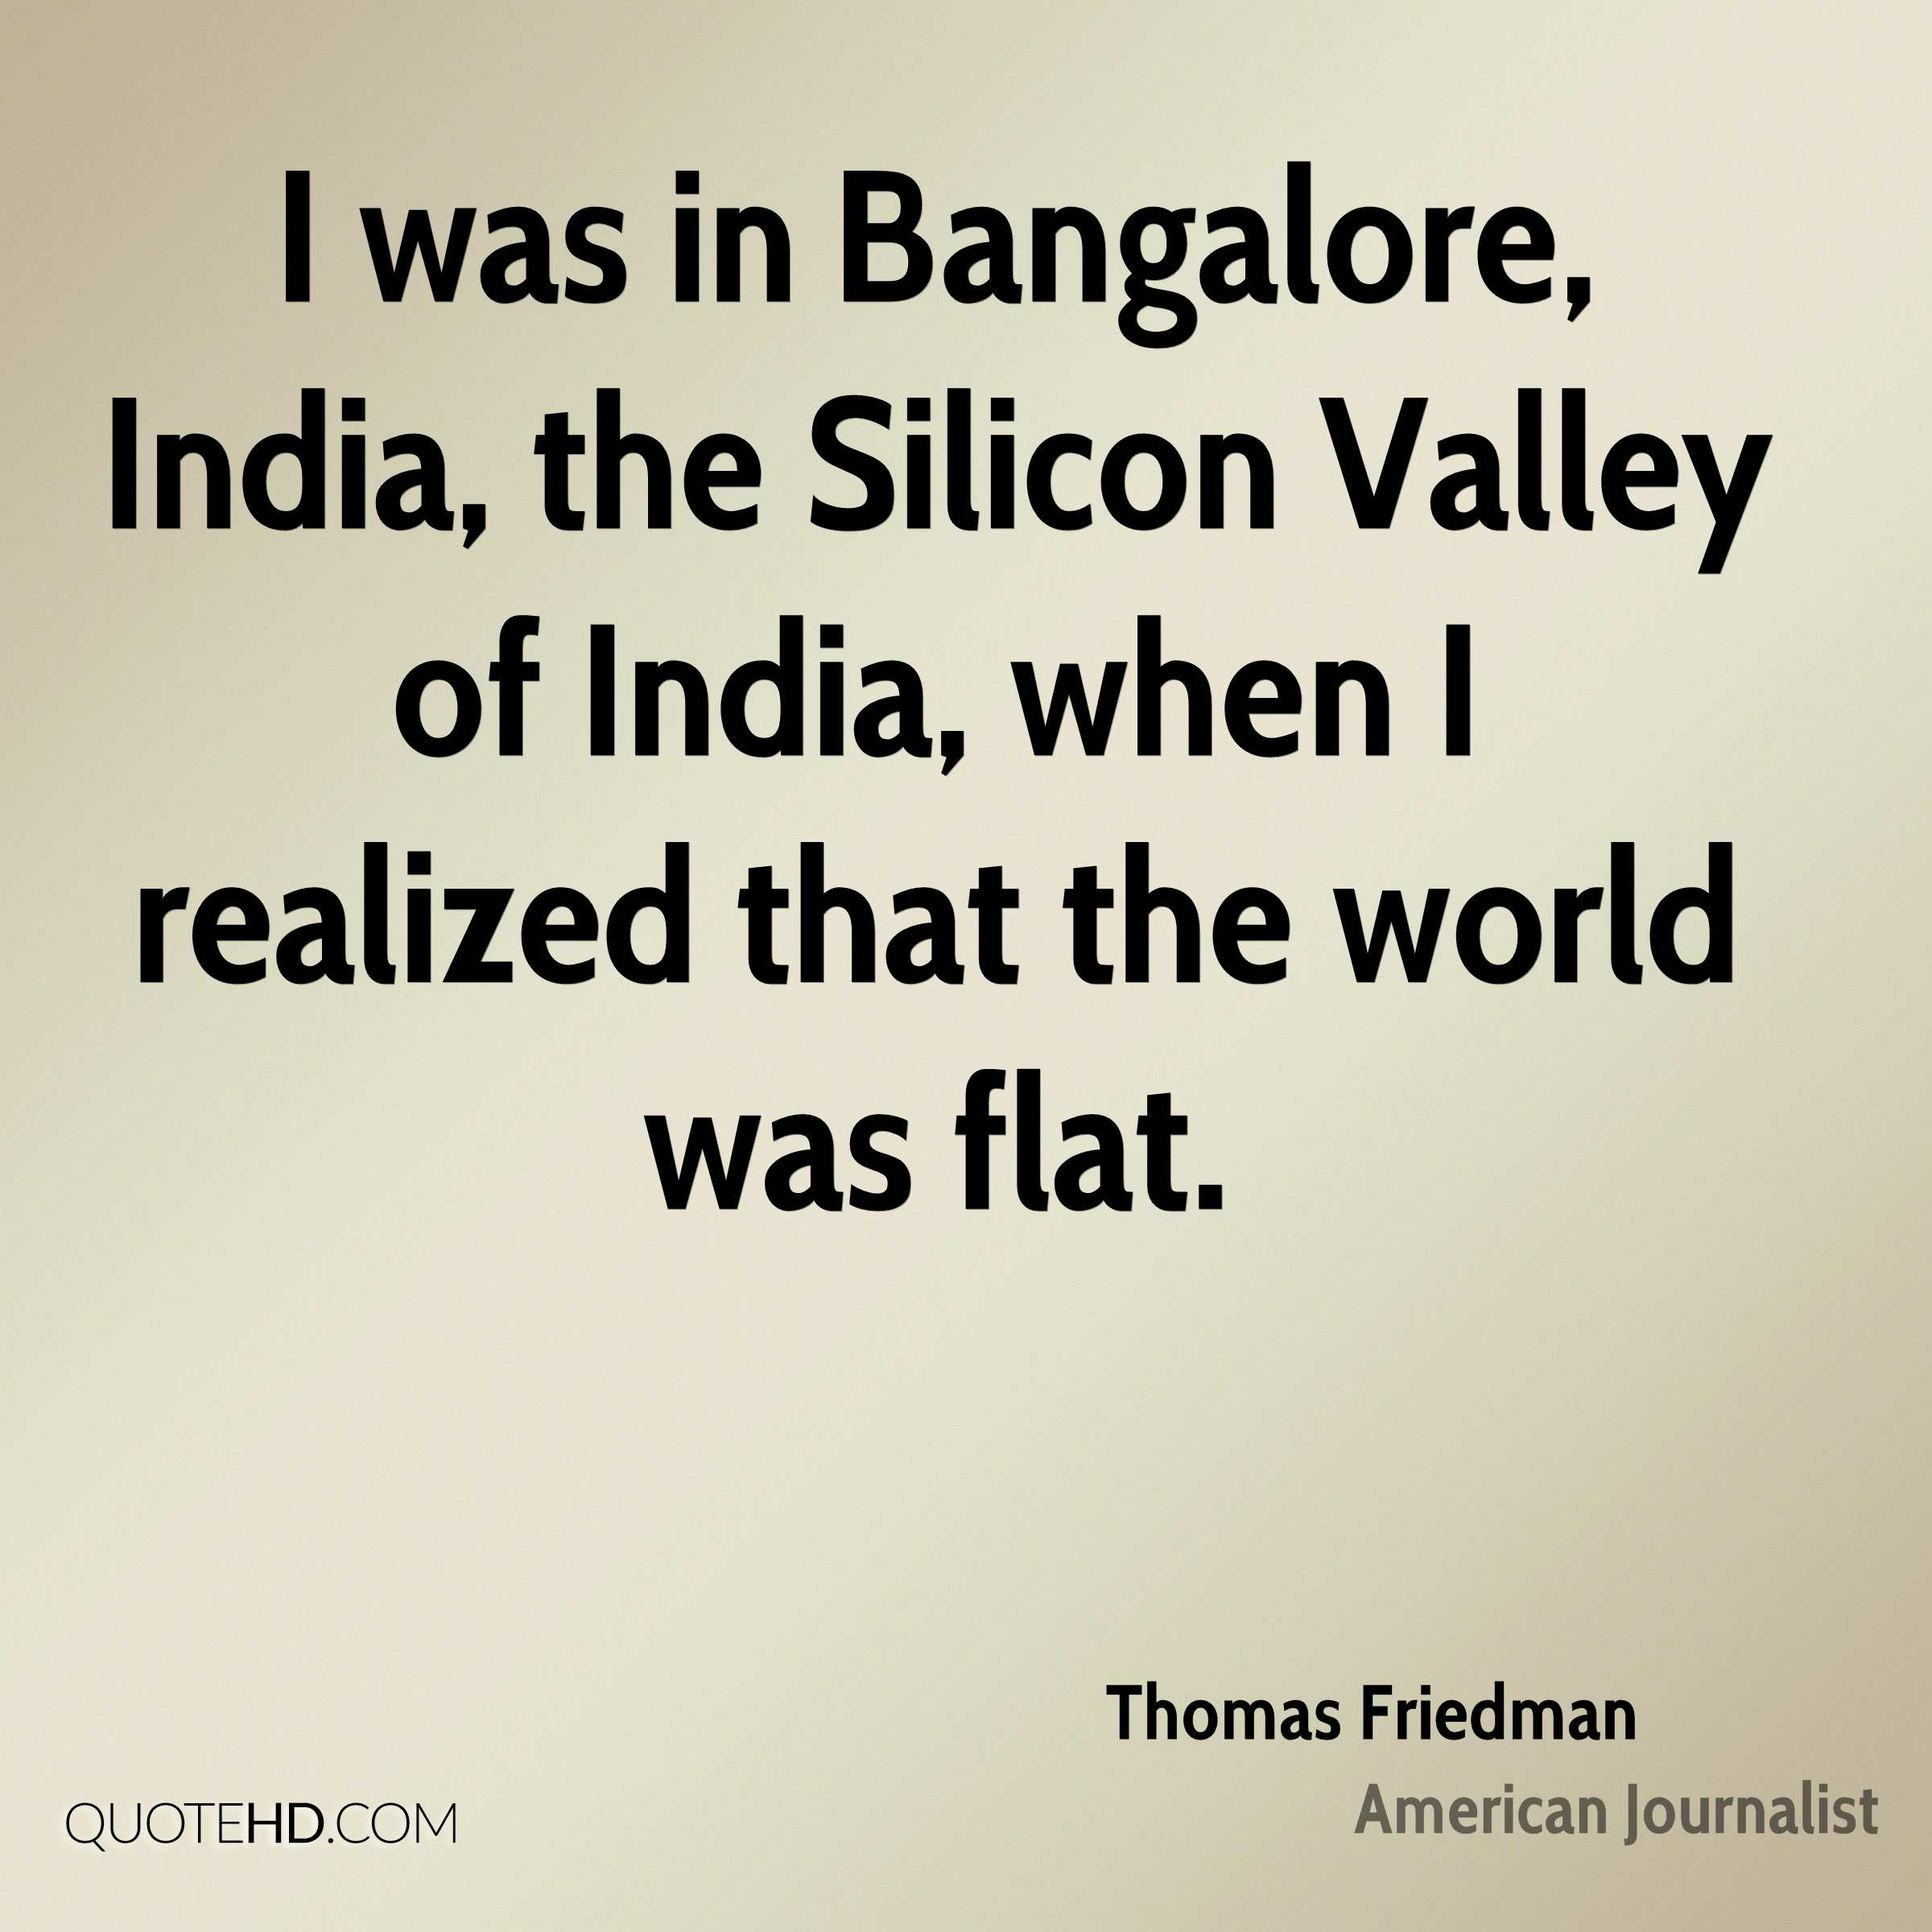 """thomas friedman outsourcing in india essay Thomas l friedman believes the world is flat by thomas l friedman analysis thanks to the explosion in the outsourcing of tax preparation"""" (friedman, 12."""